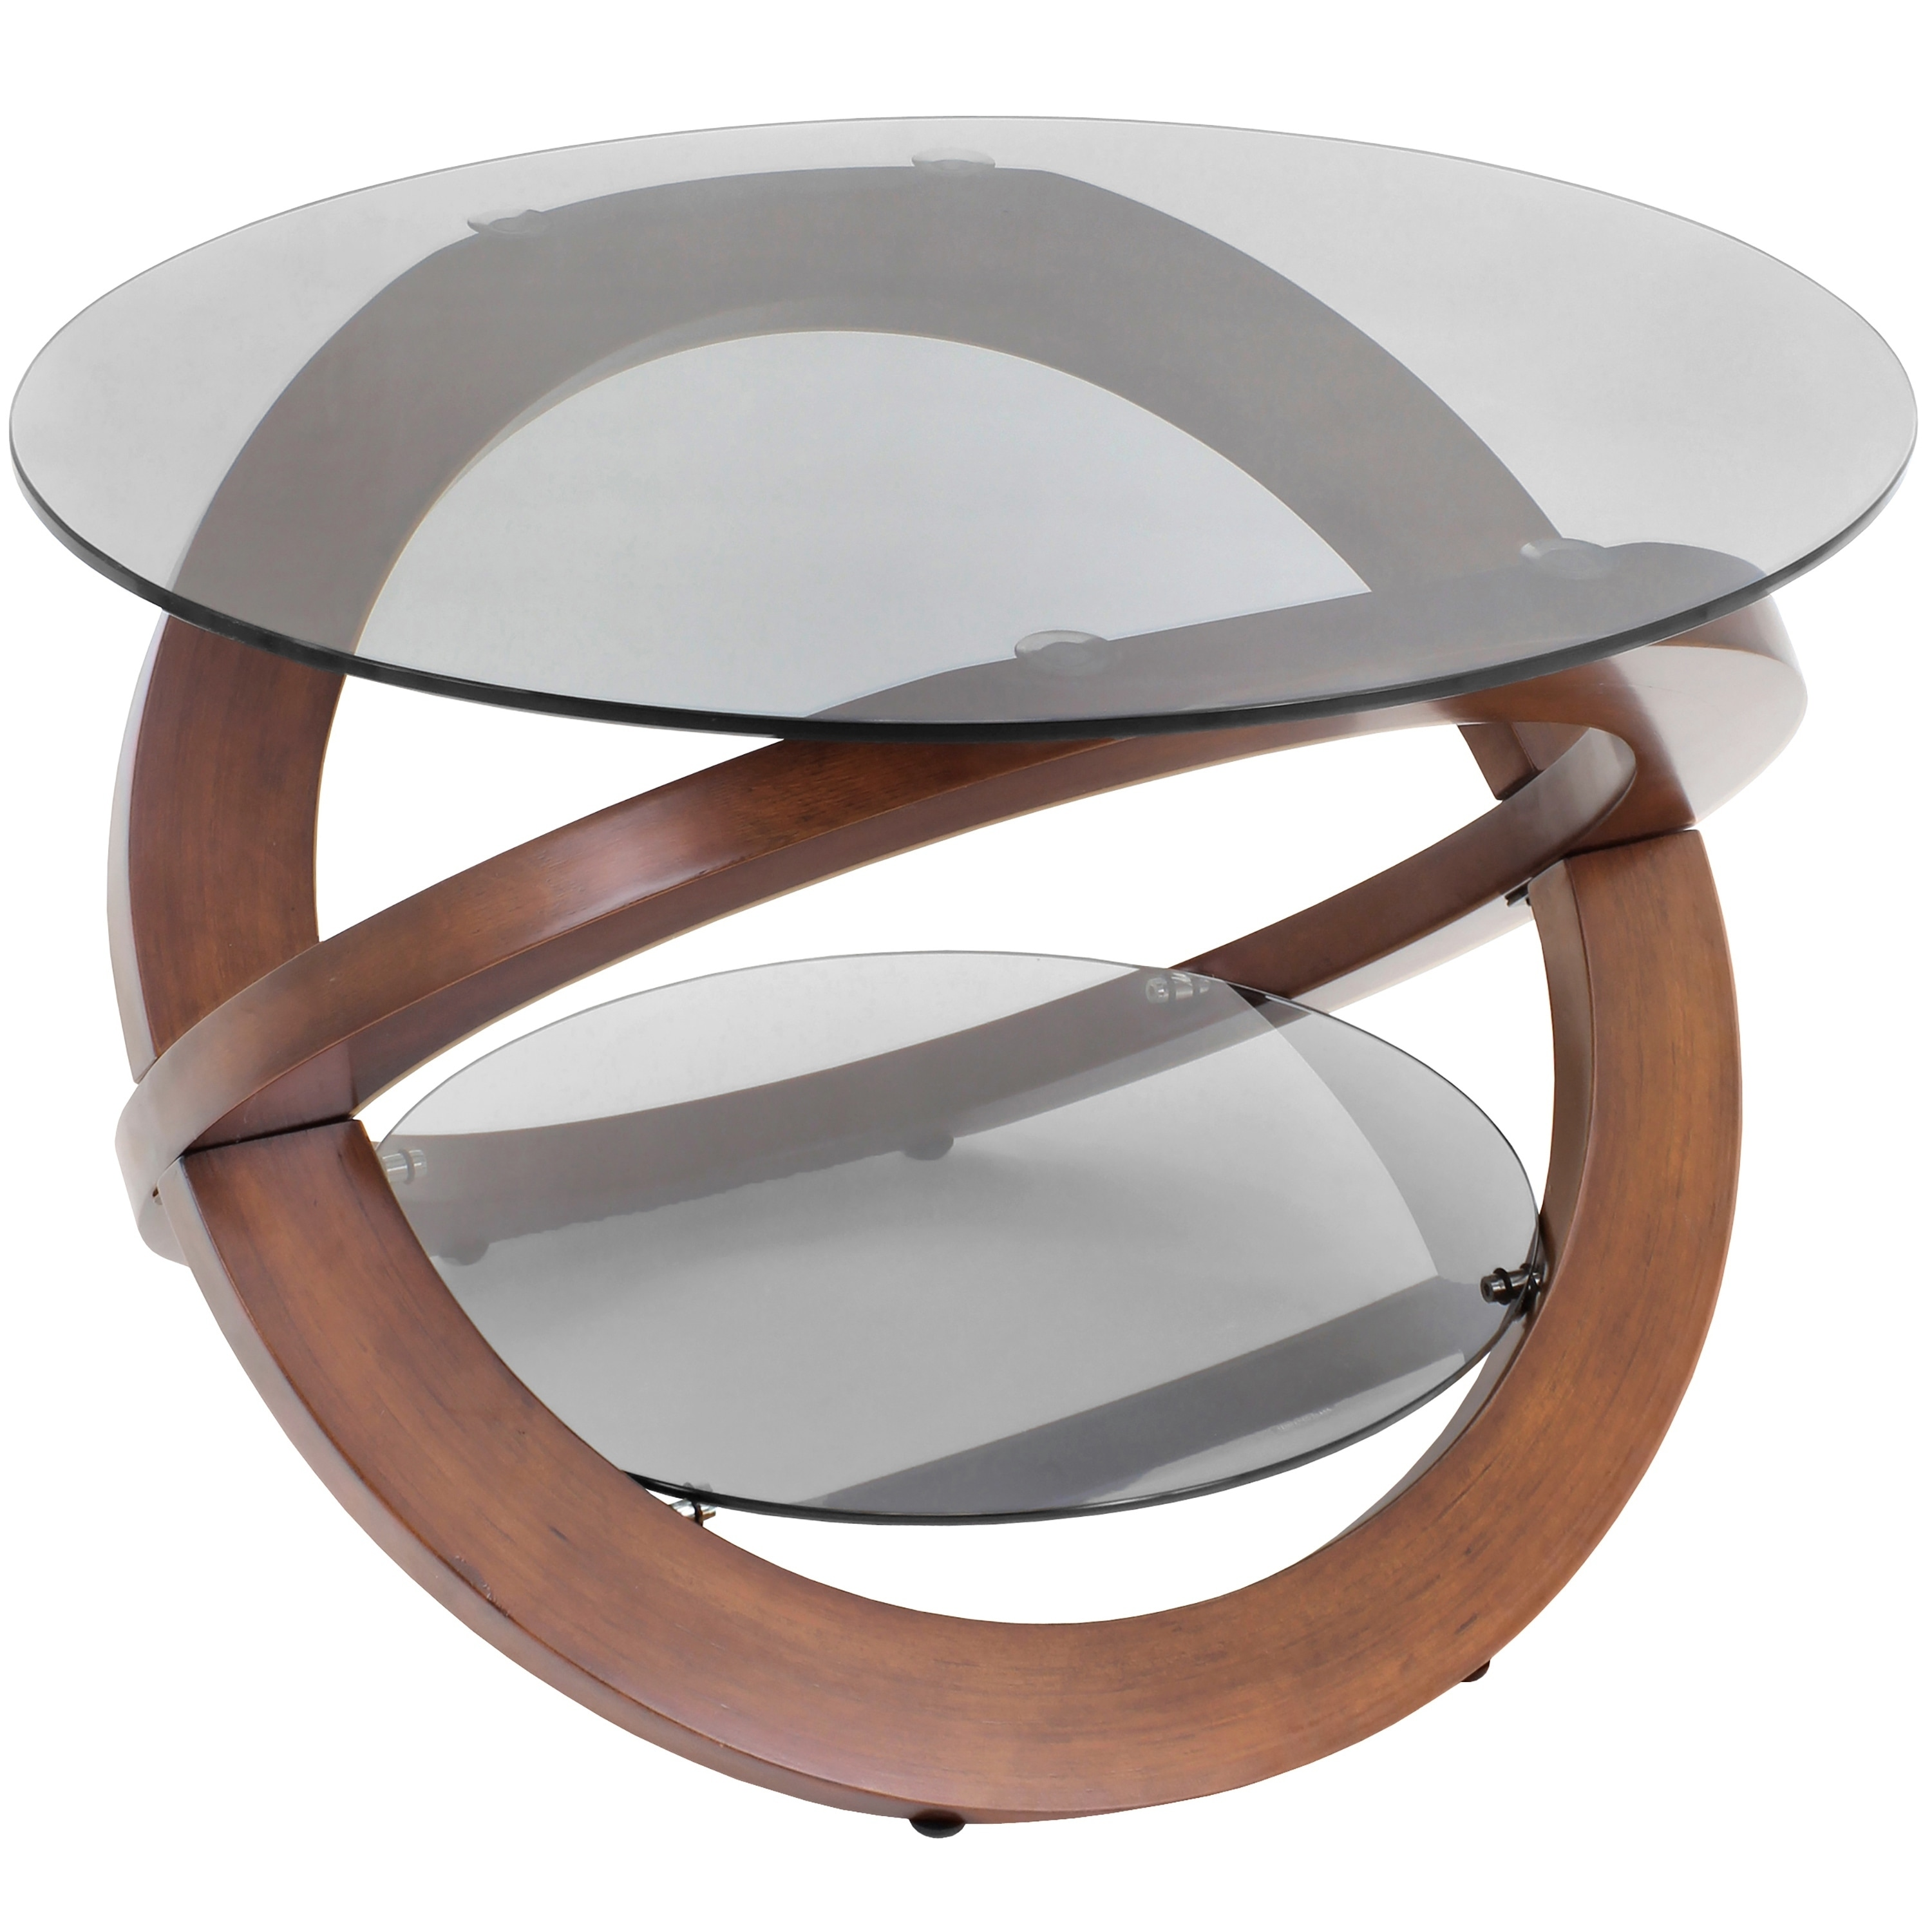 Lumisource Linx Bent Wood Accent Coffee Table (Linx Table...